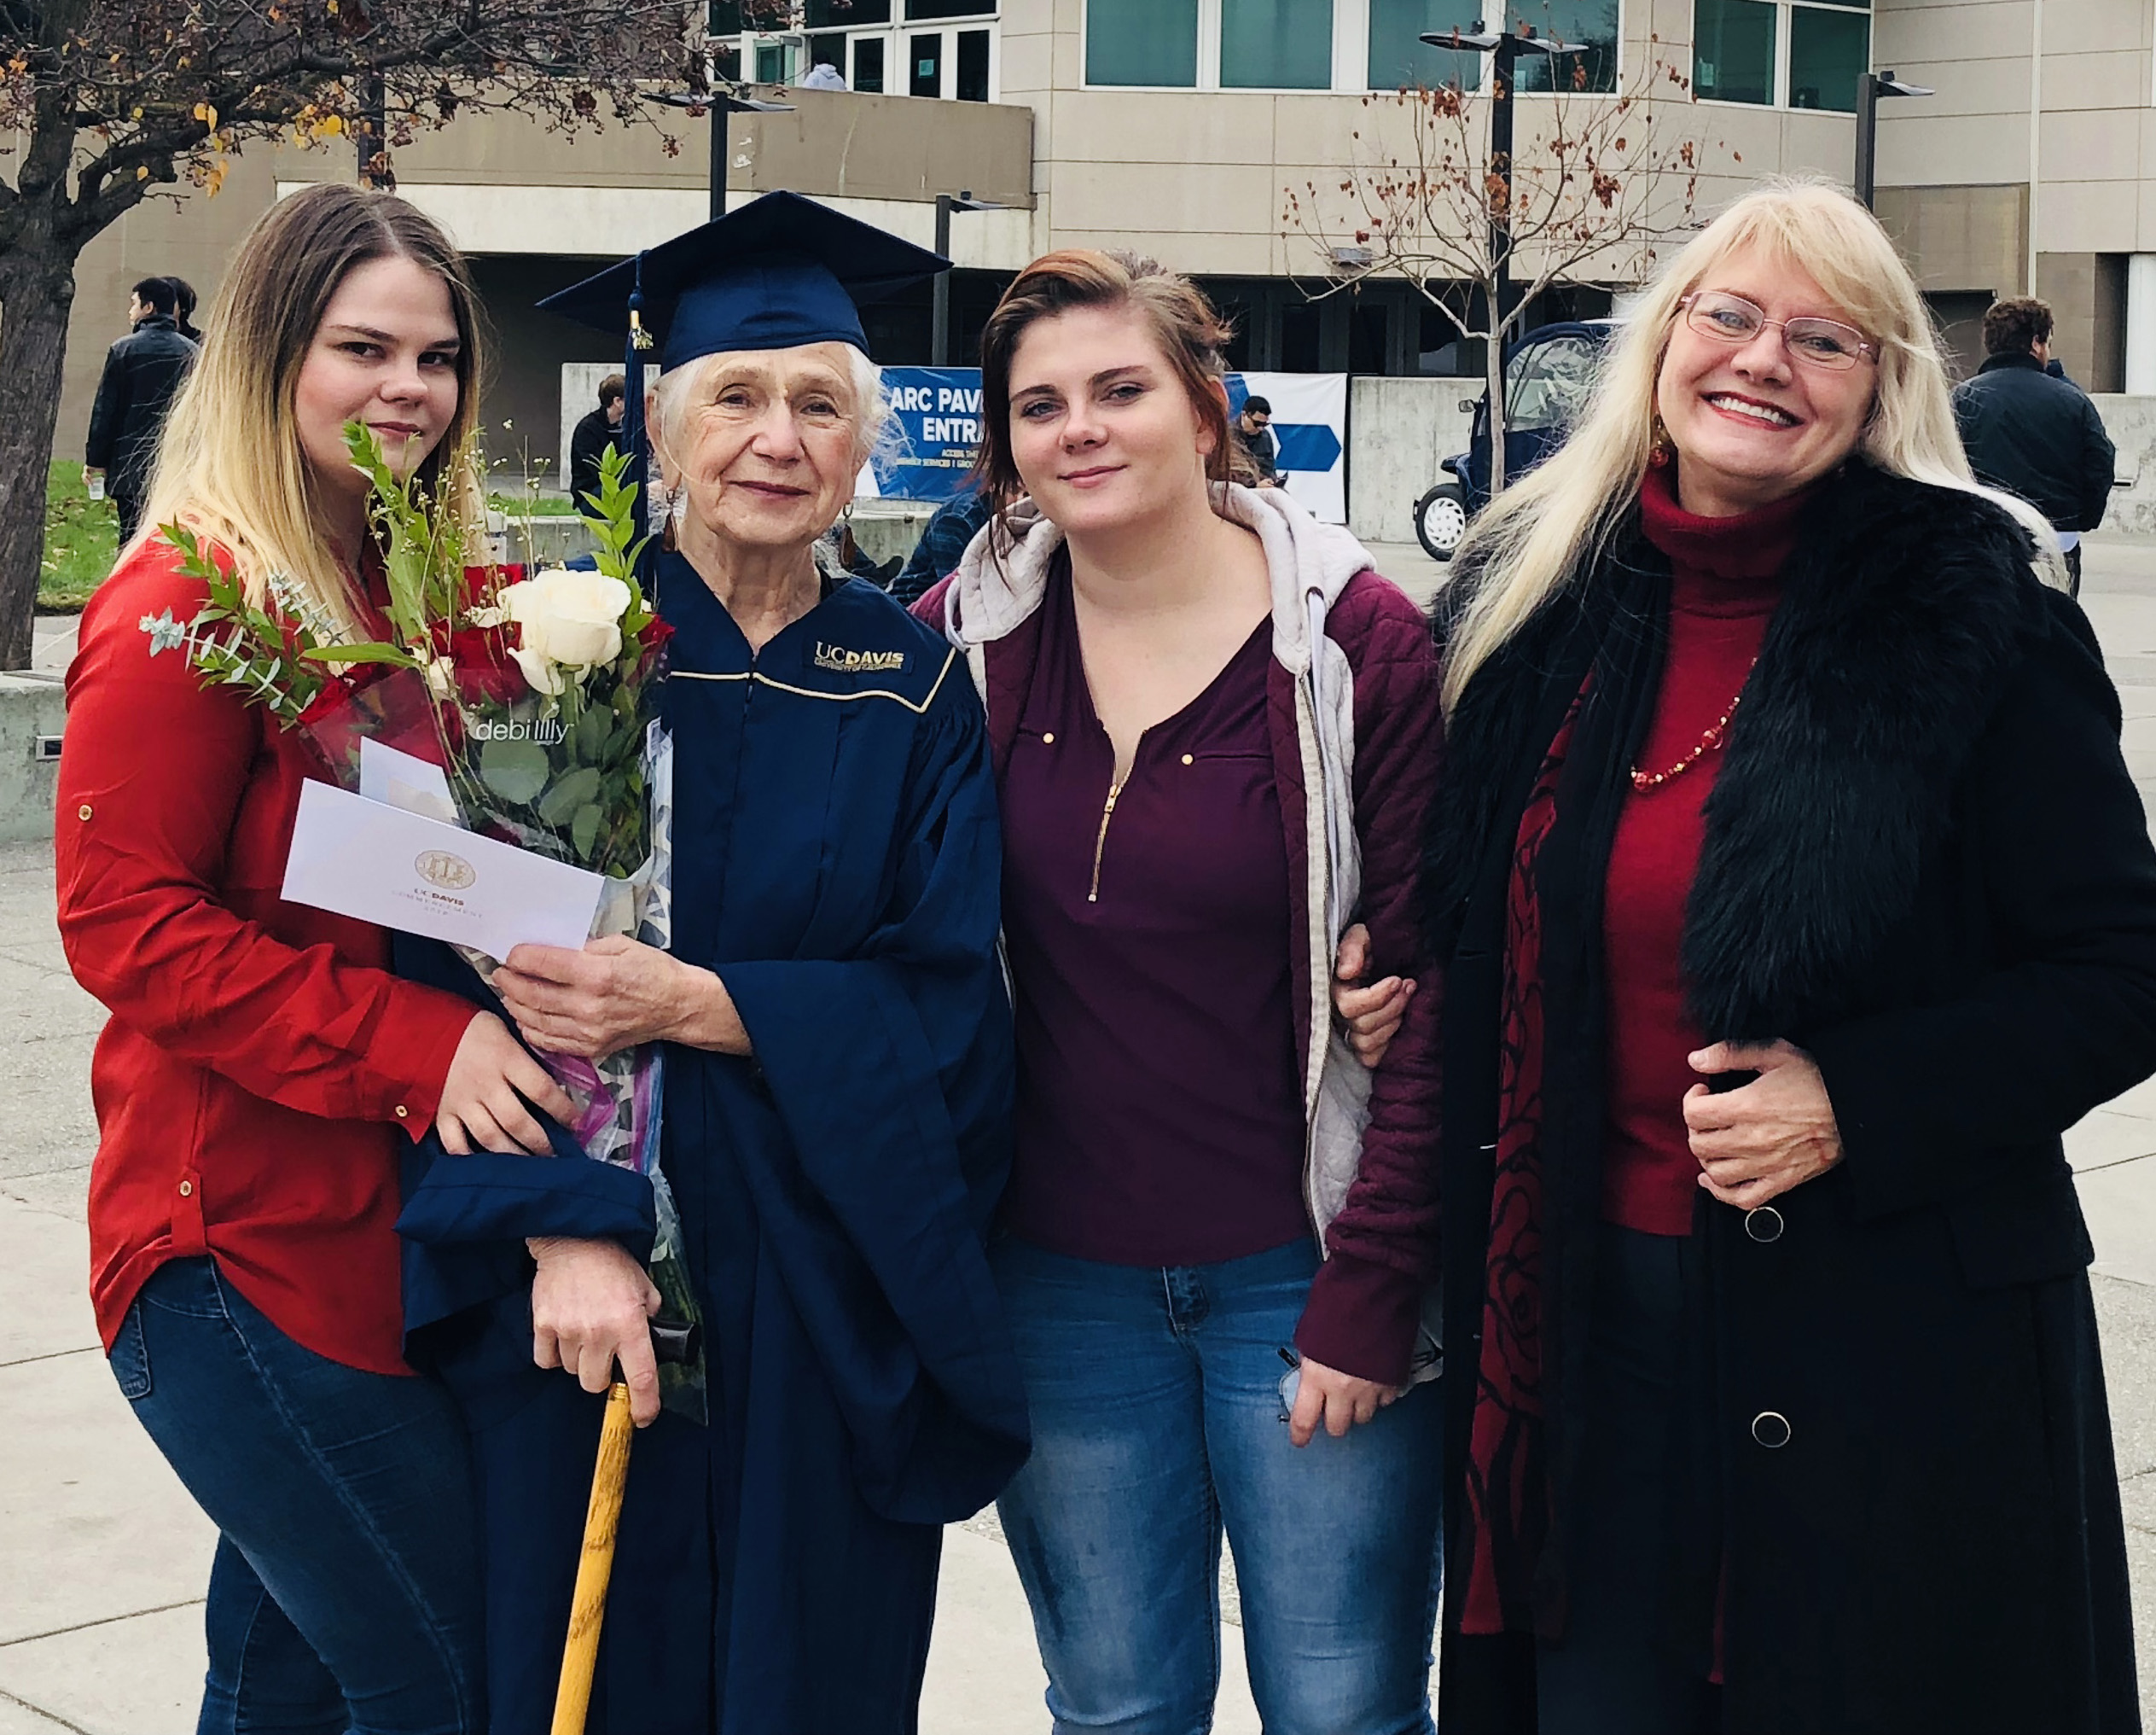 Photo of Marianna Daniel in cap and gown with her family in front of the UC Davis ARC Pavilion